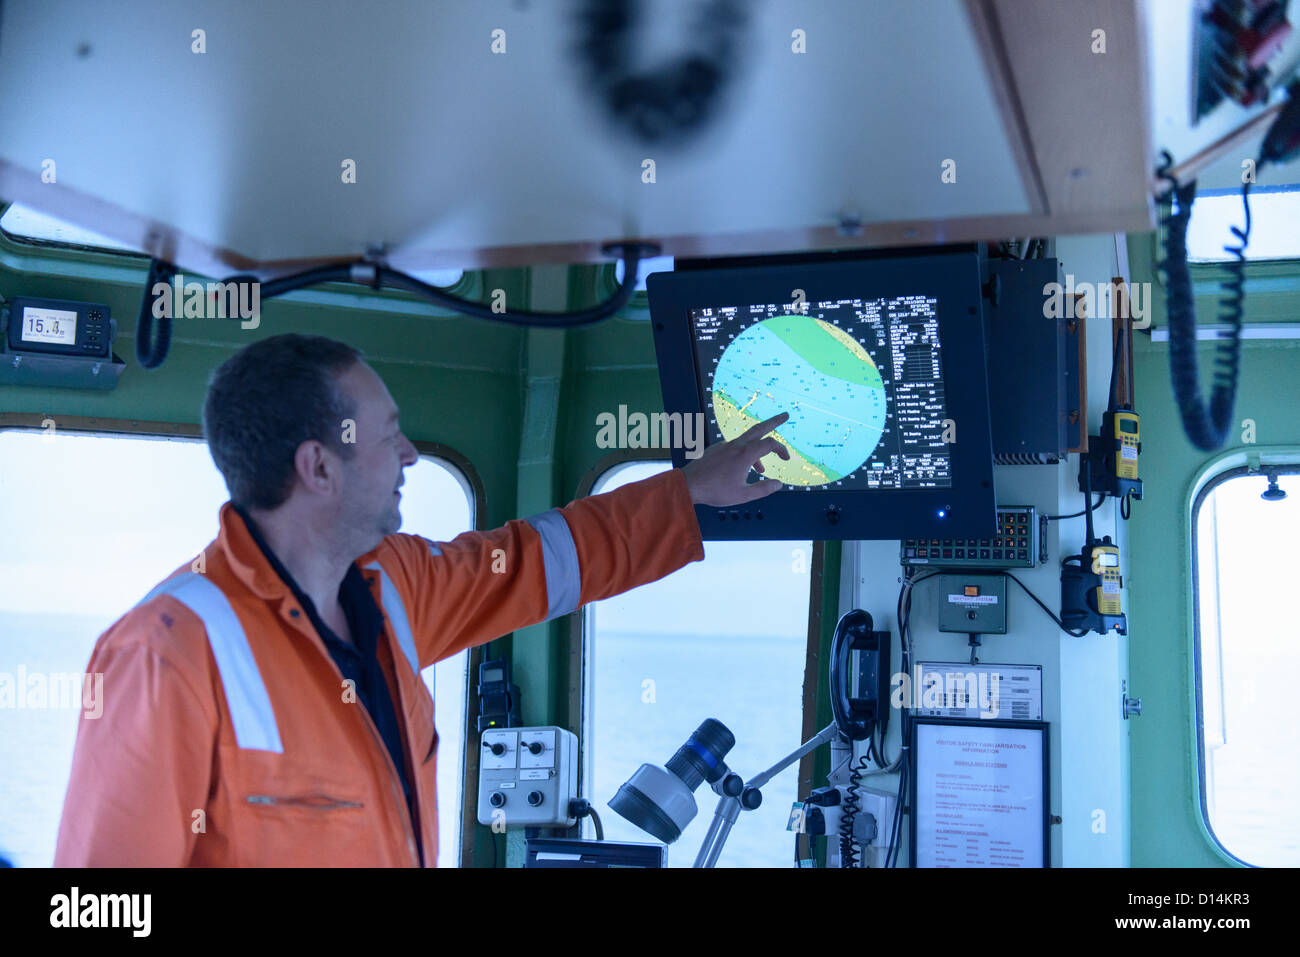 Tugboat worker examining map - Stock Image